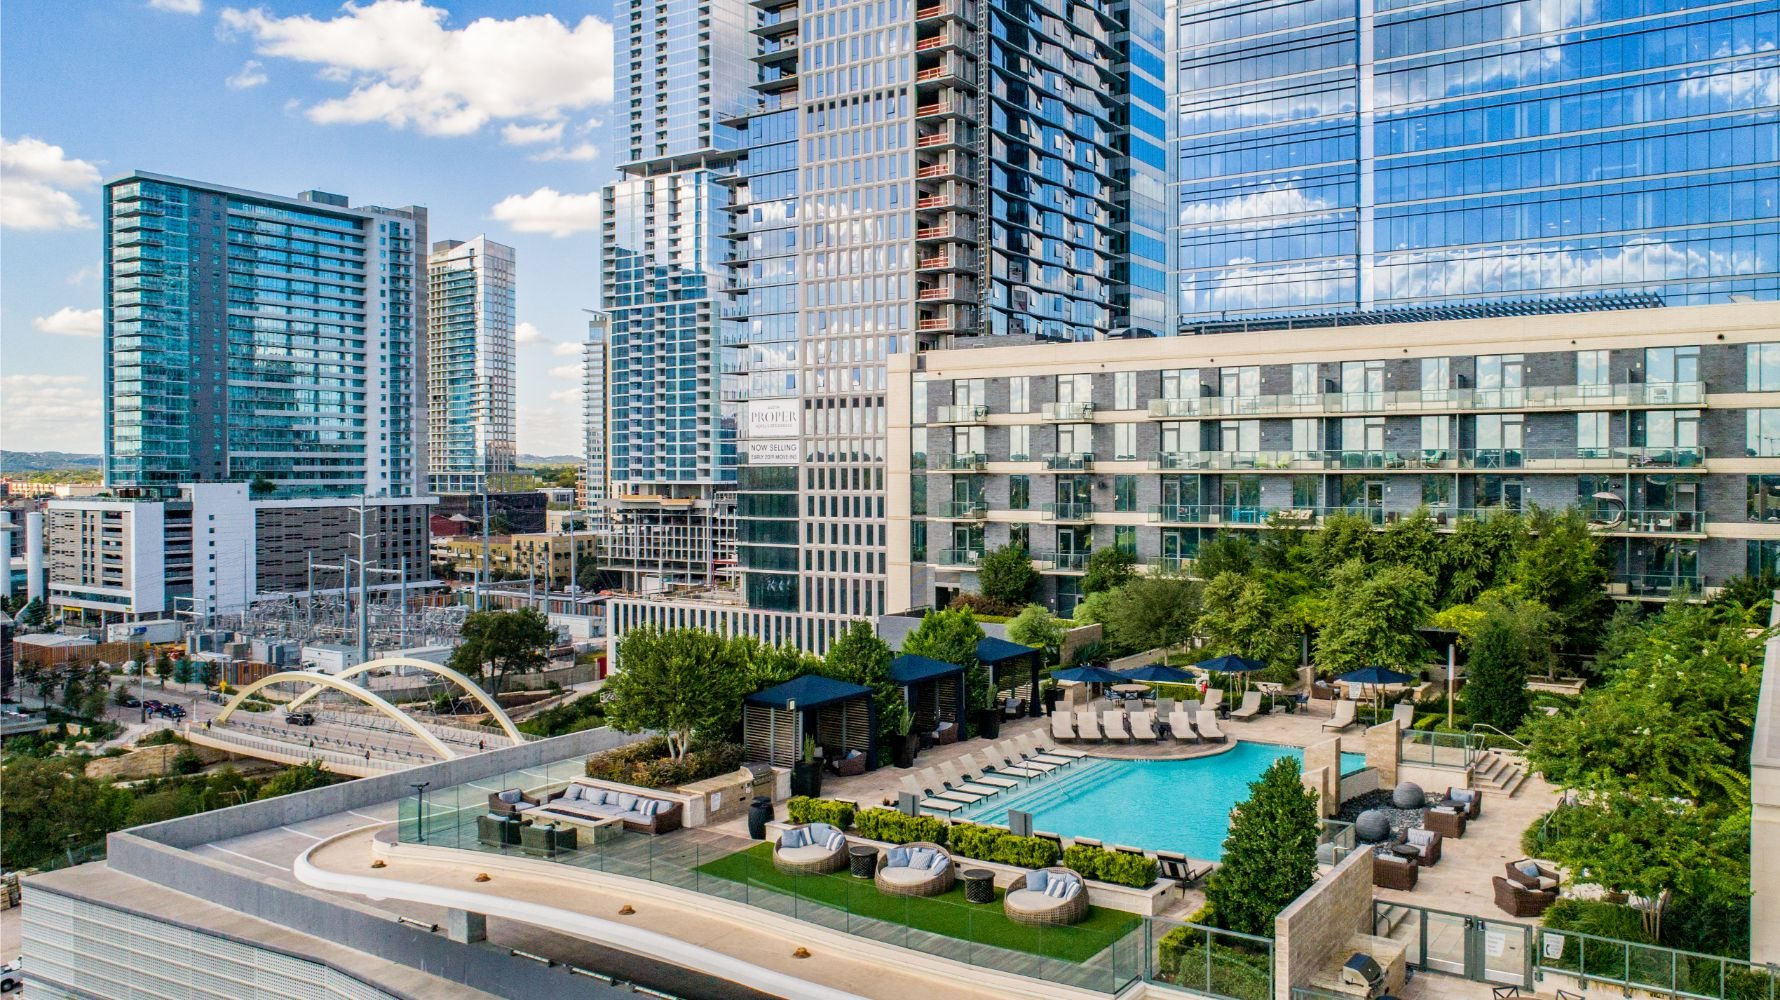 Apartments With The Most 5-Star Reviews In Austin